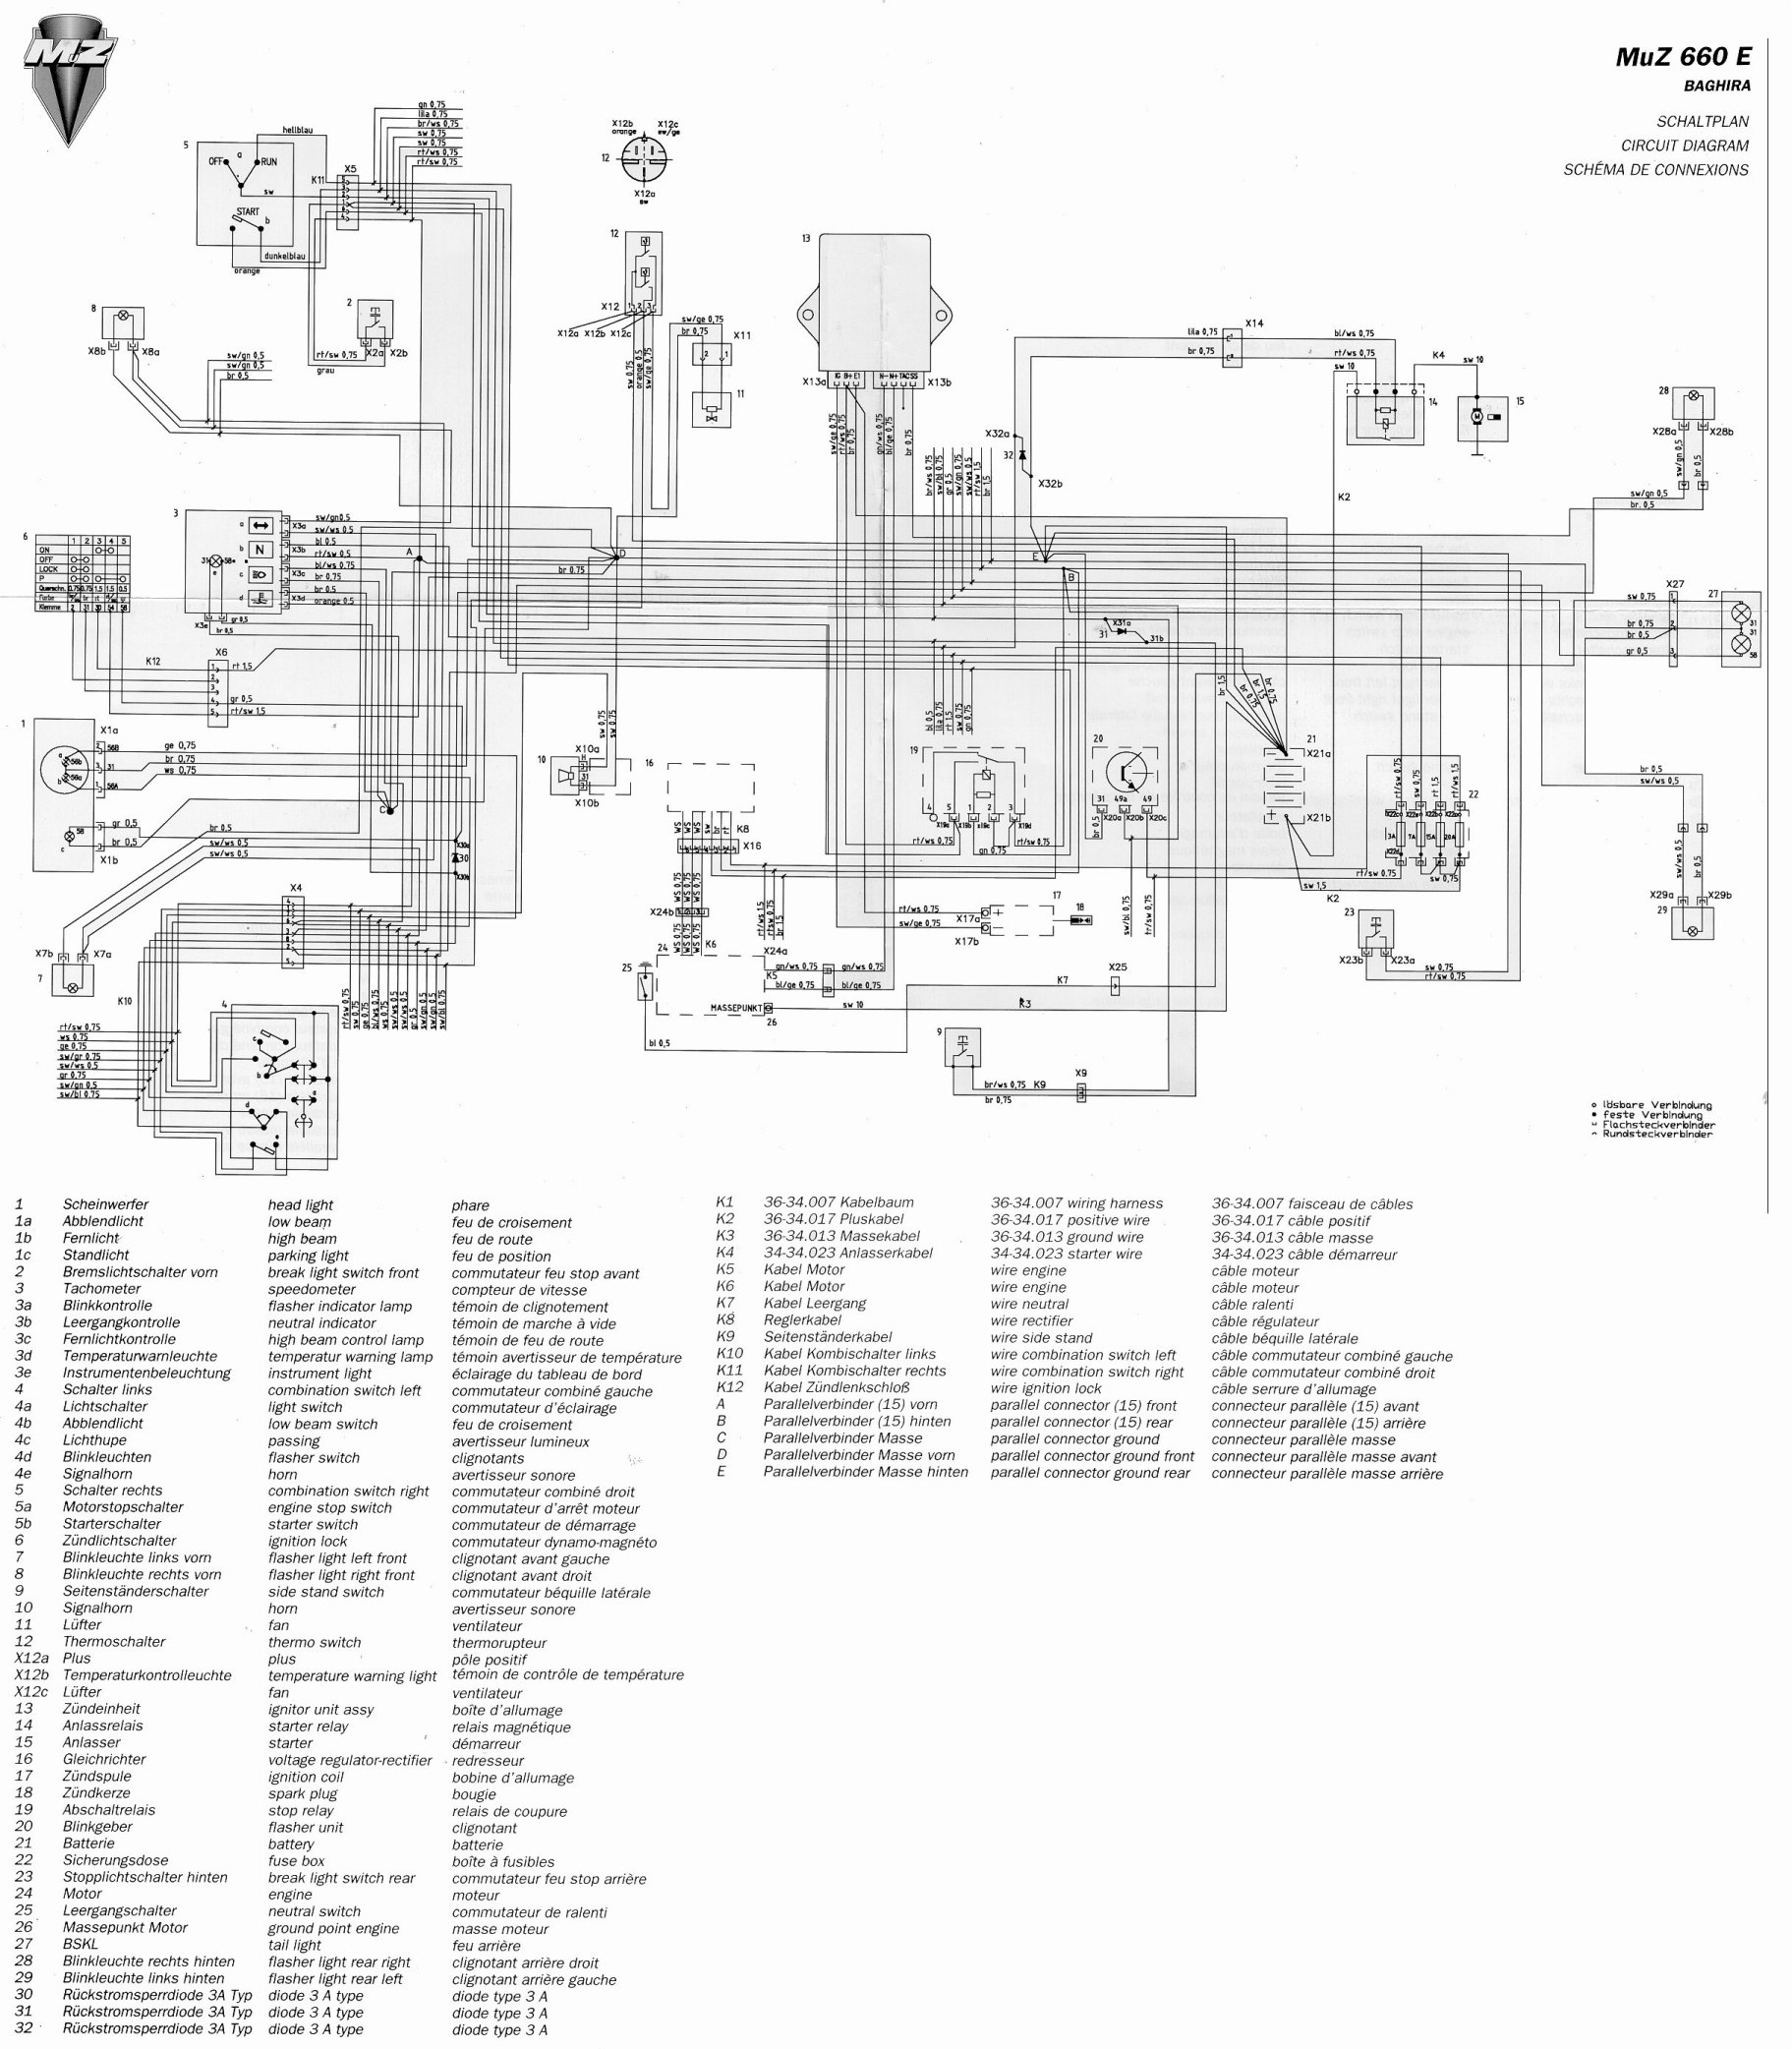 Suzuki K10 Wiring Diagram Library Daihatsu Immobilizer Baghira And Mastiff Diagrams